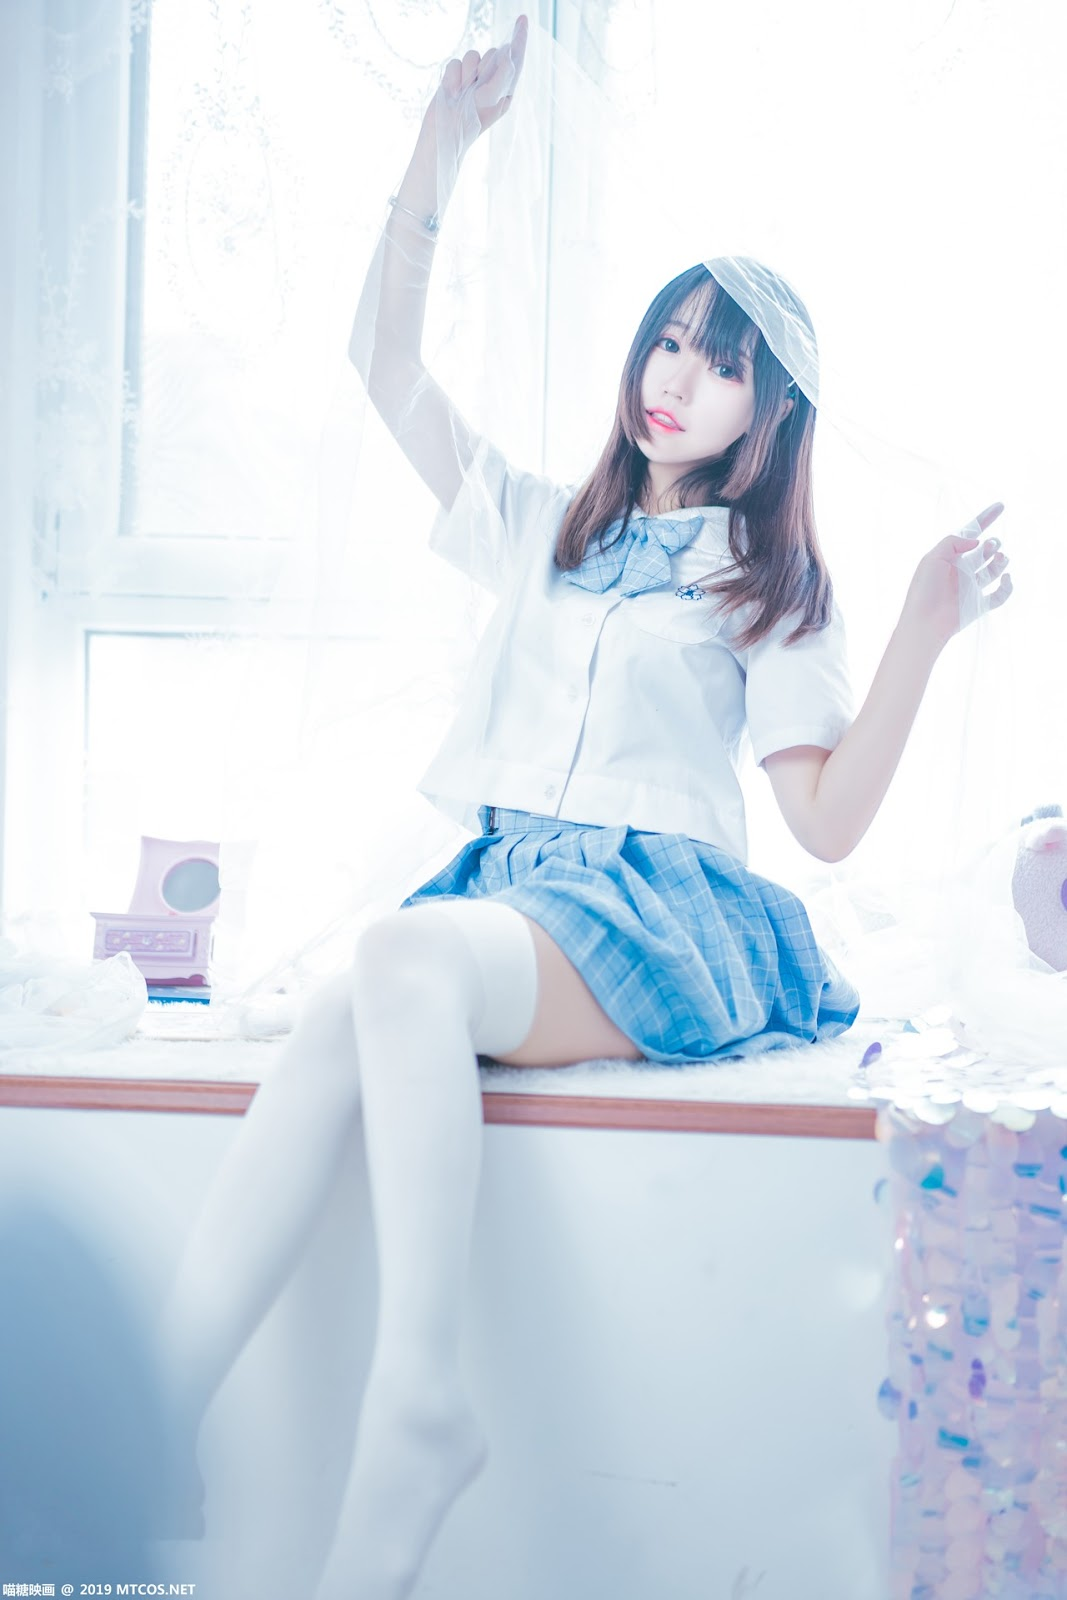 Image [MTCos] 喵糖映画 Vol.019 – Chinese Cute Model – Blue White Fantasy Girl - TruePic.net - Picture-5